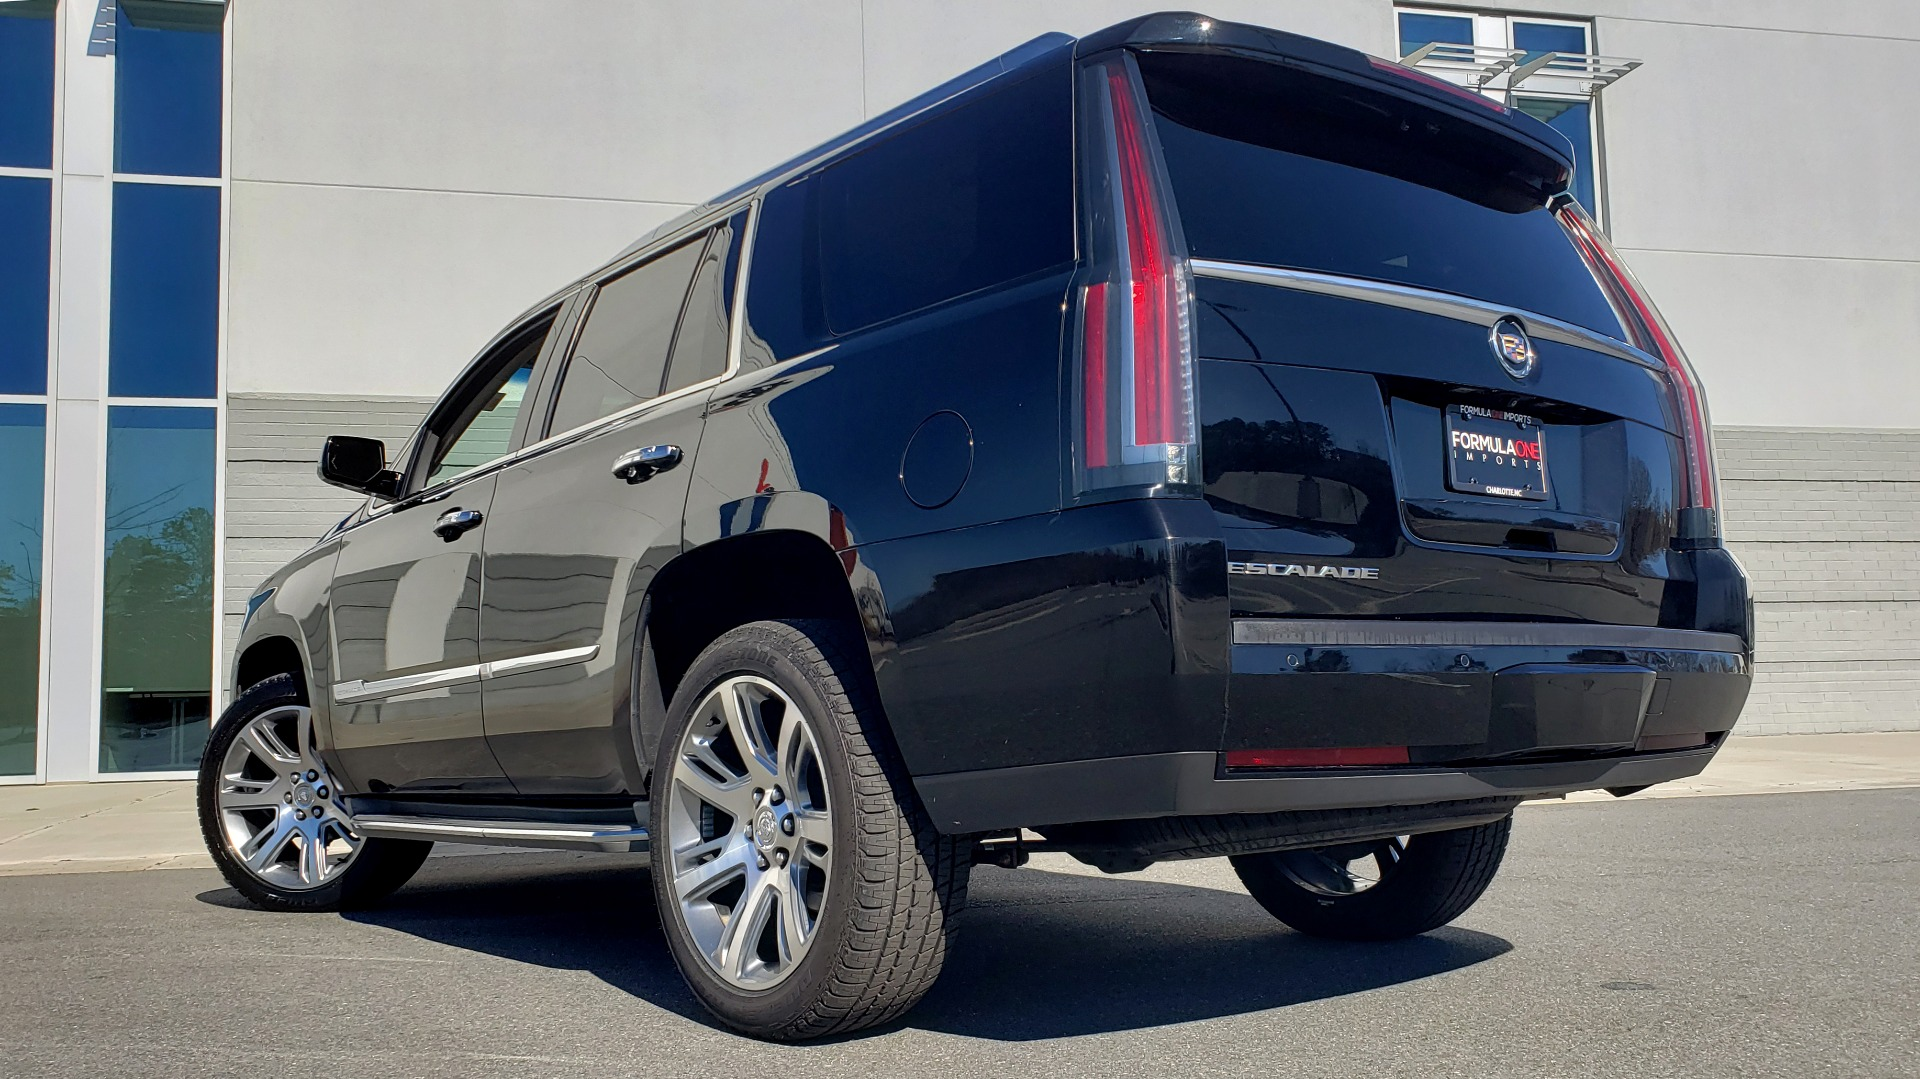 Used 2015 Cadillac ESCALADE PREMIUM 4WD / NAV / SUNROOF / REARVIEW / 3-ROW for sale Sold at Formula Imports in Charlotte NC 28227 2